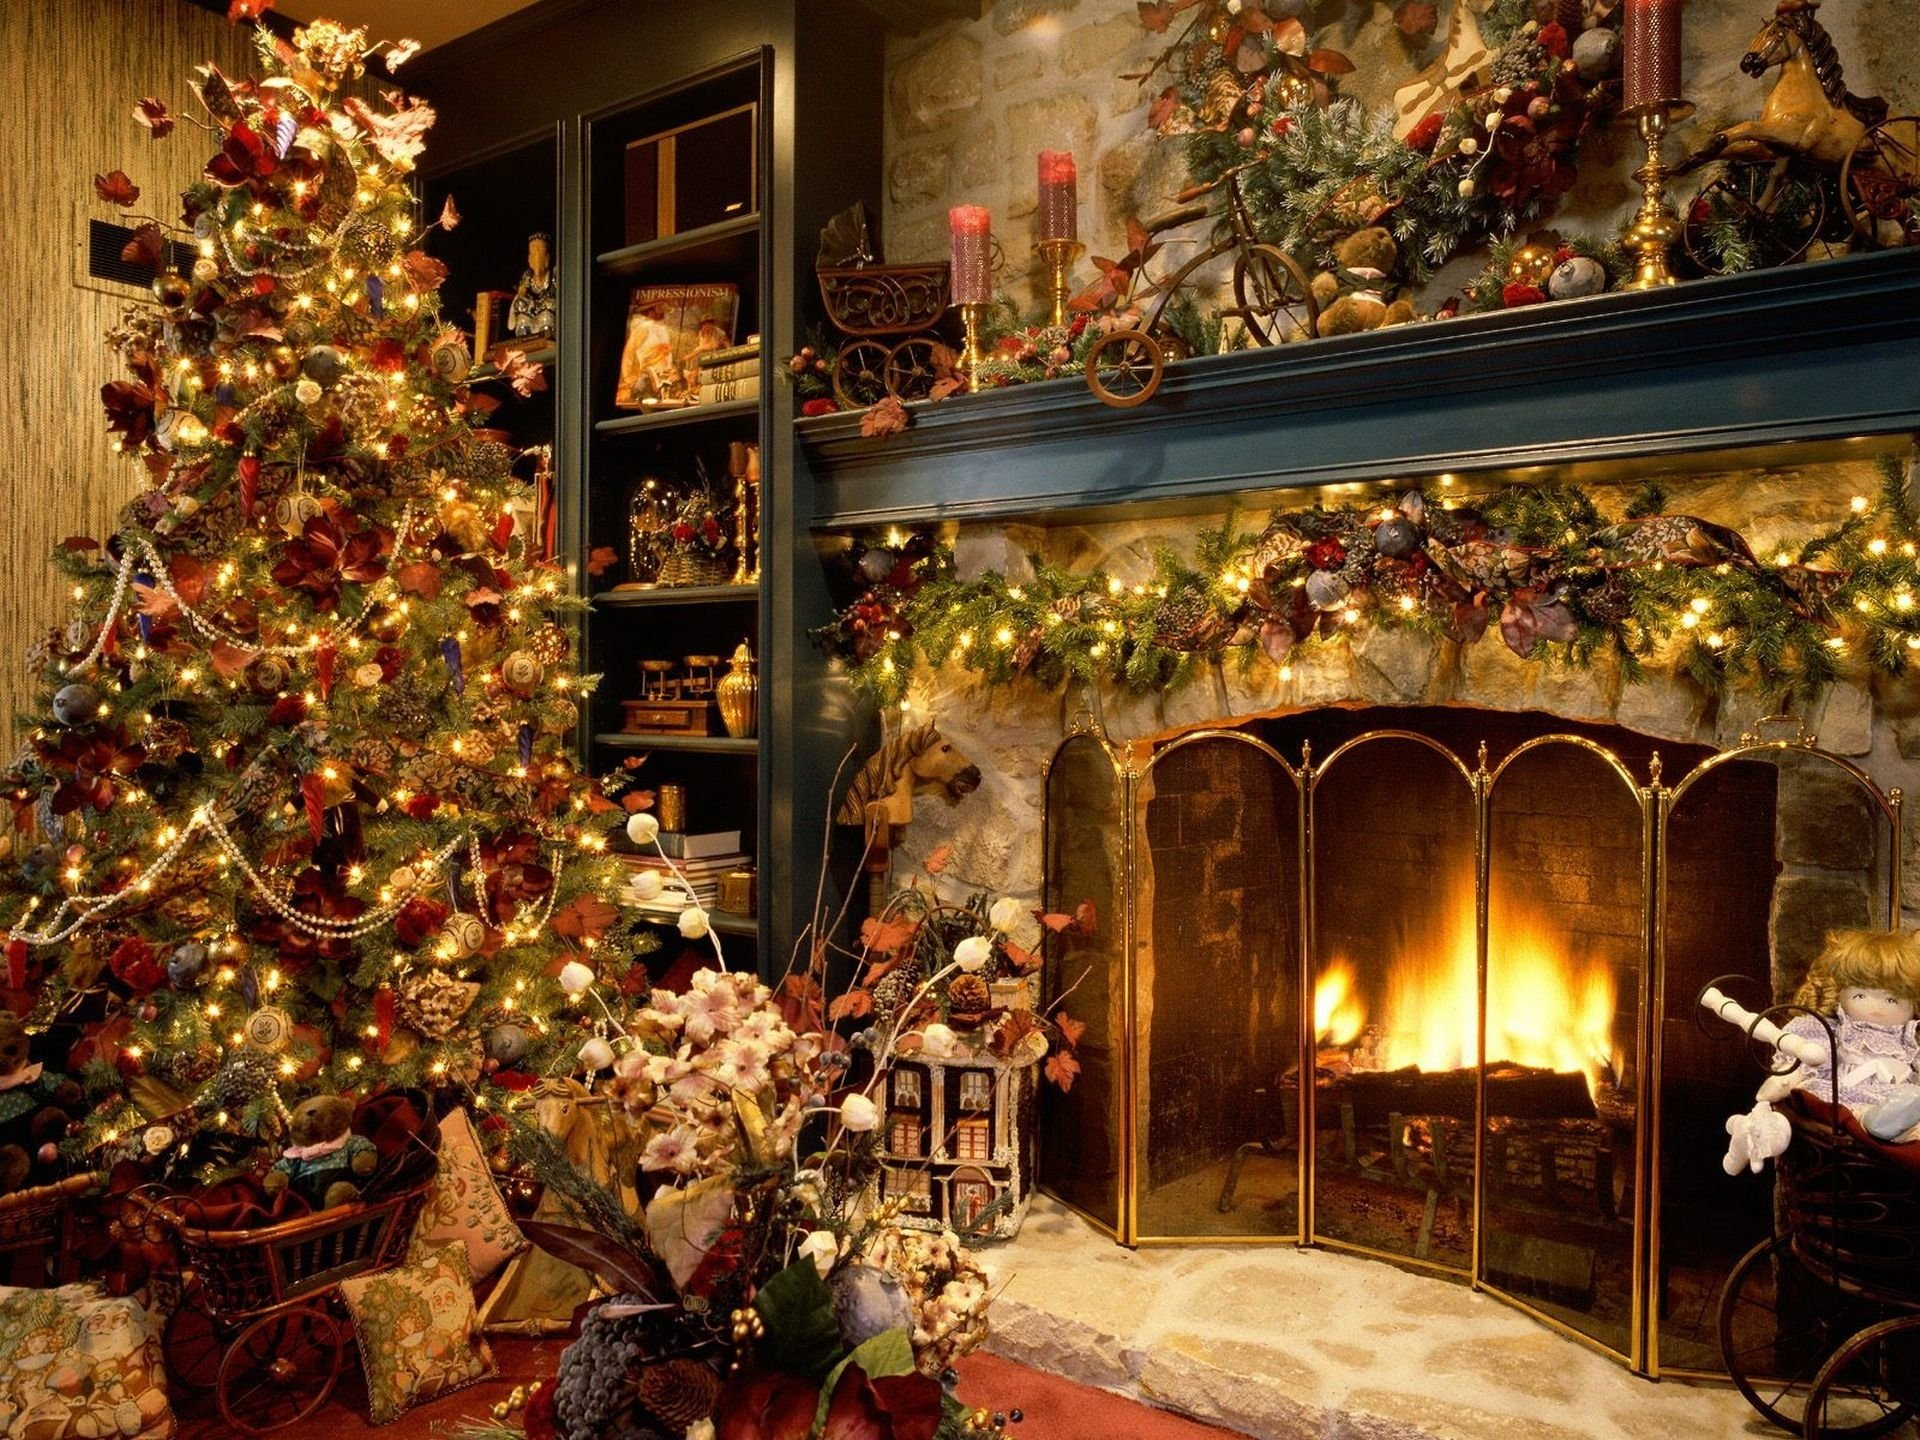 Holiday - Christmas  Christmas Tree Christmas Ornaments Fireplace Wallpaper